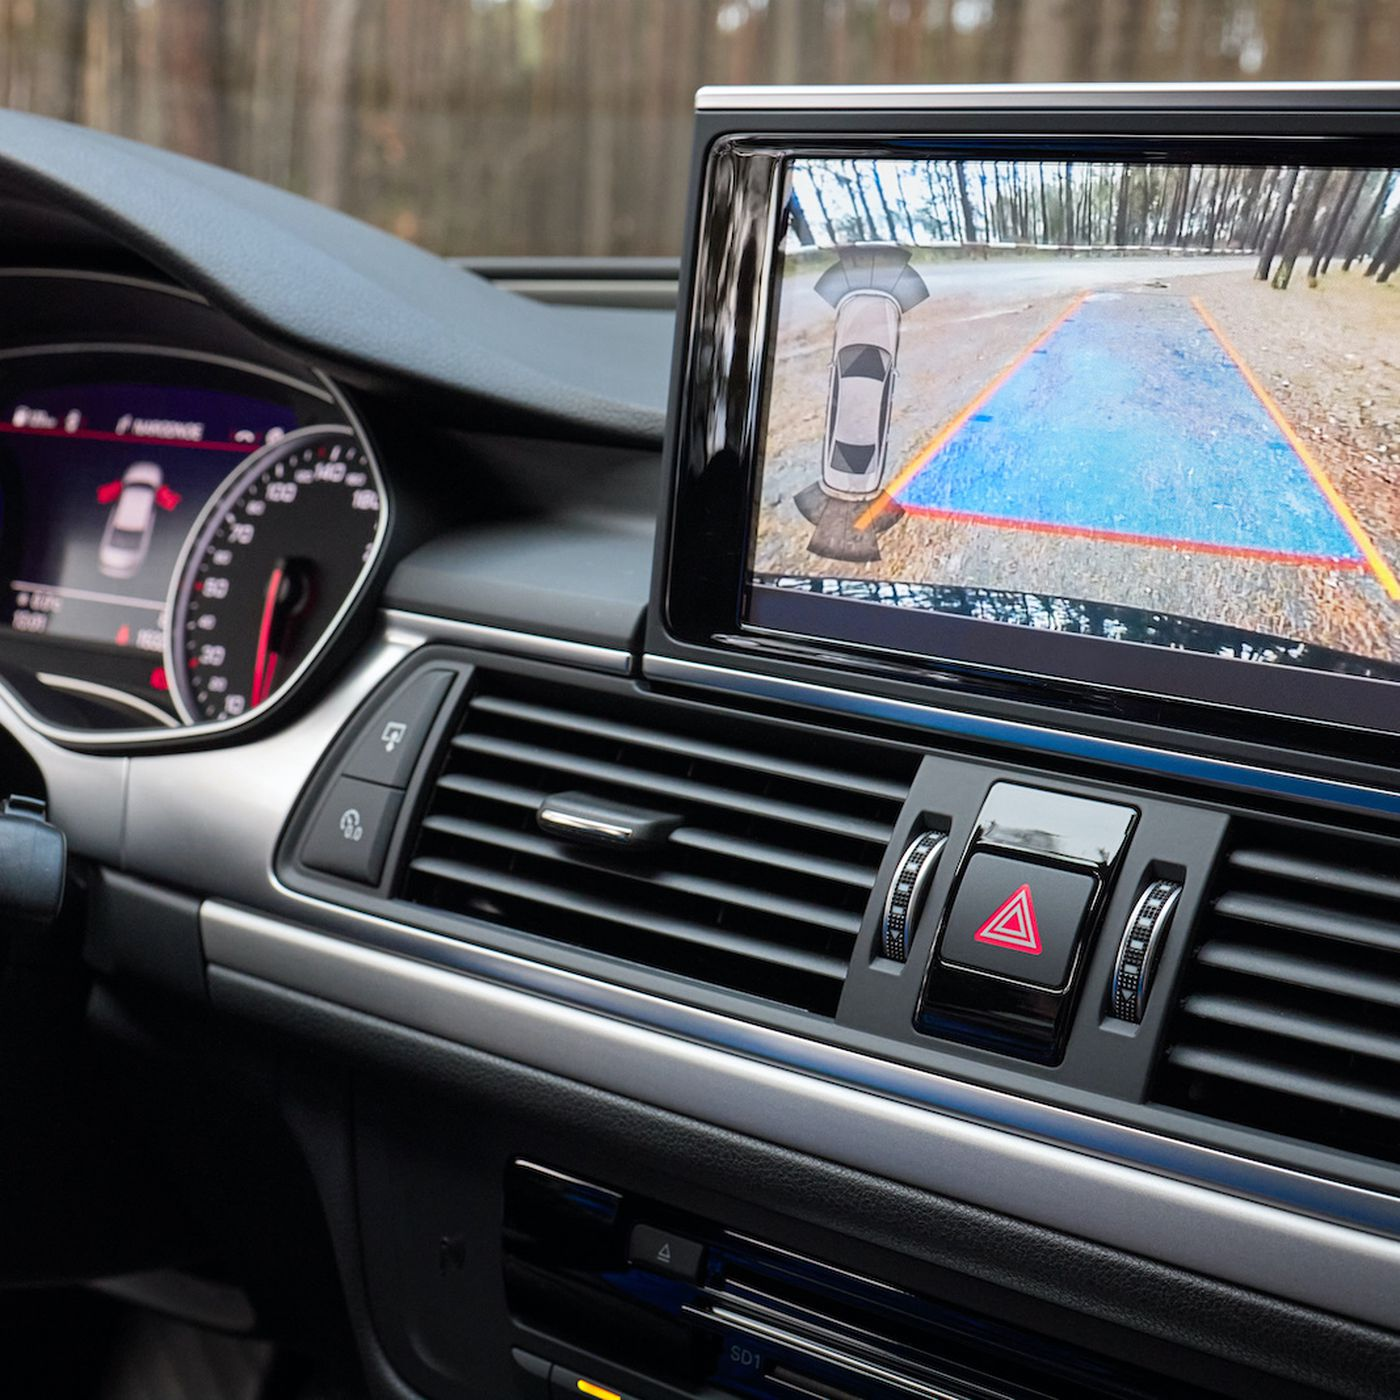 Upgrade Your Old Car With New Car Technology Chicago Sun Times